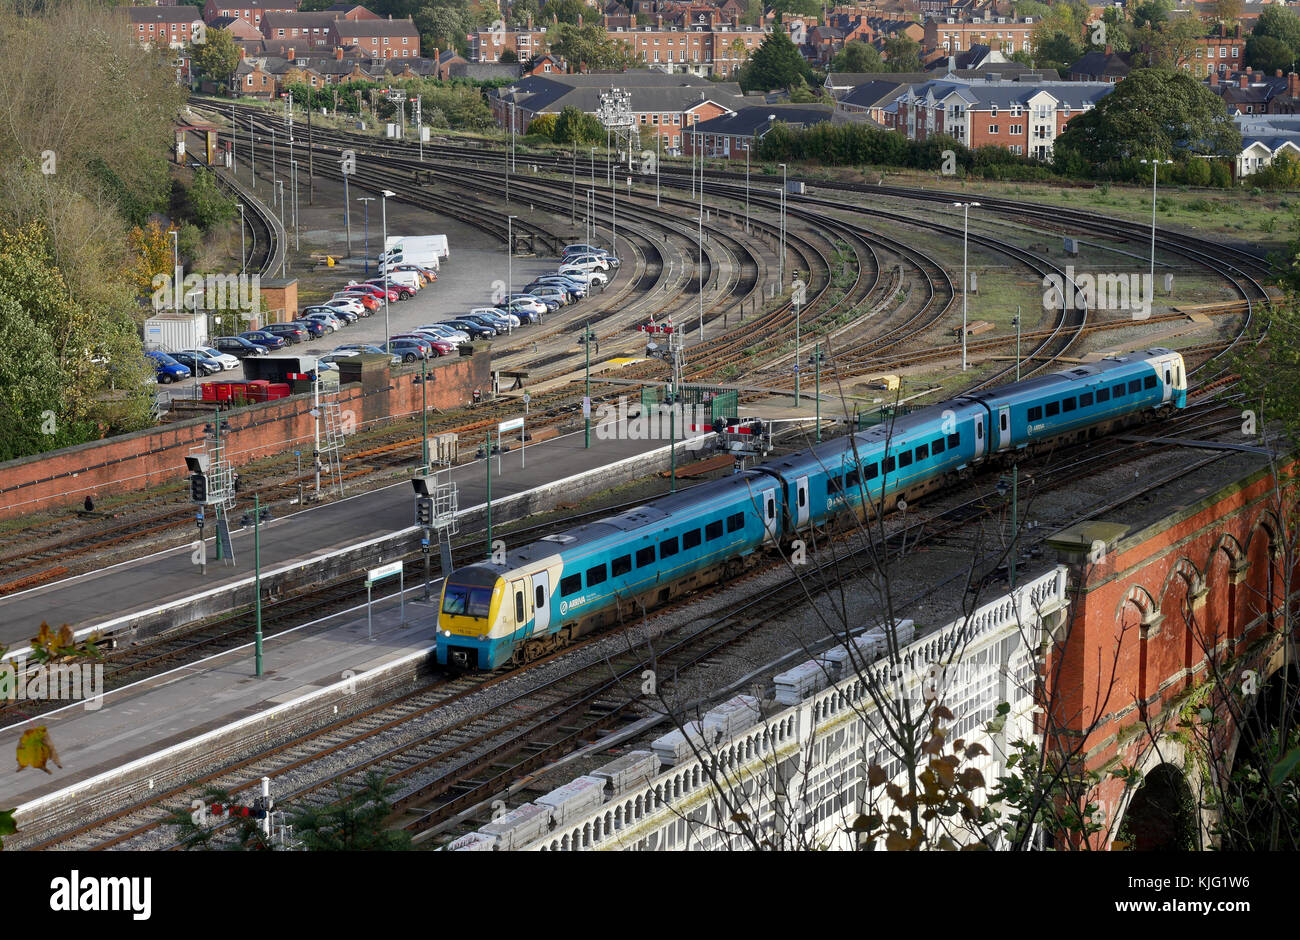 An Arriva Class 175 Coradia DMU train approaches Shrewsbury Railway Station from the English Bridge Junction, Shrewsbury, - Stock Image